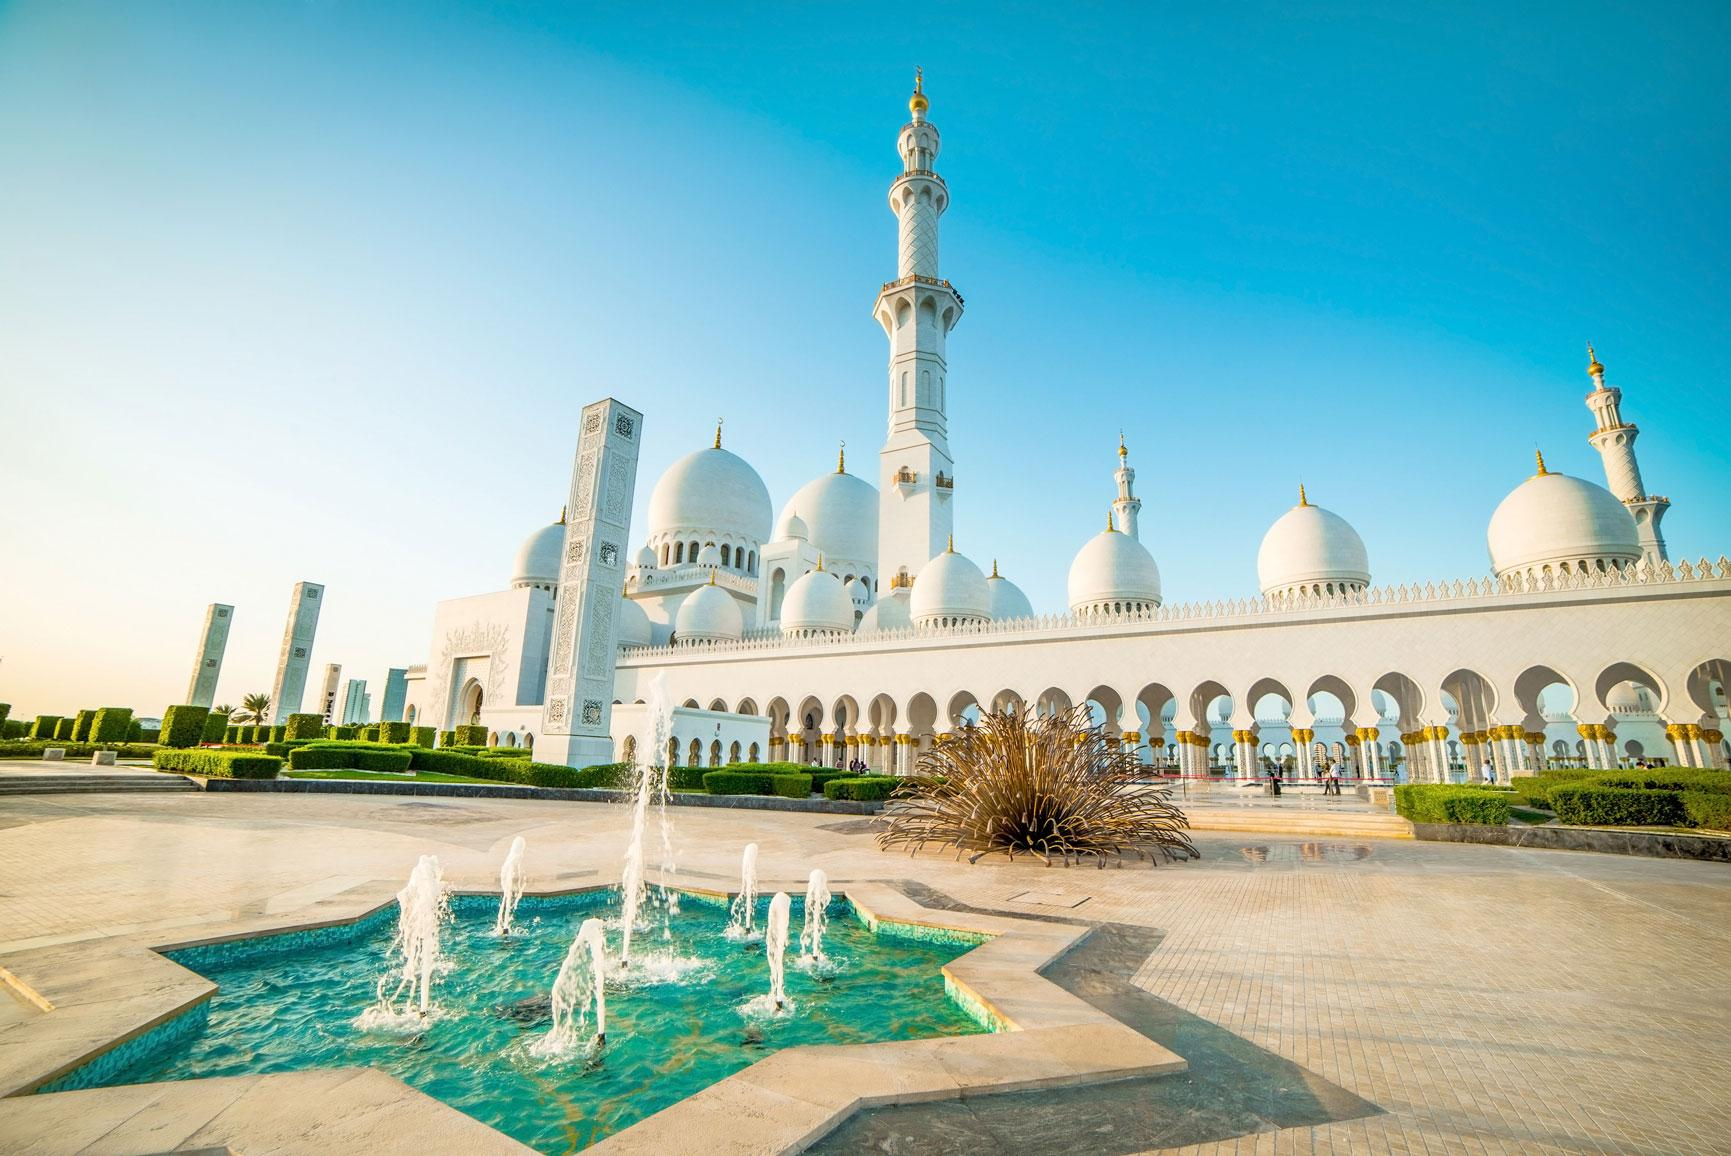 Experience monuments like the Sheik Zayed Grand Mosque with Middle East vacation packages